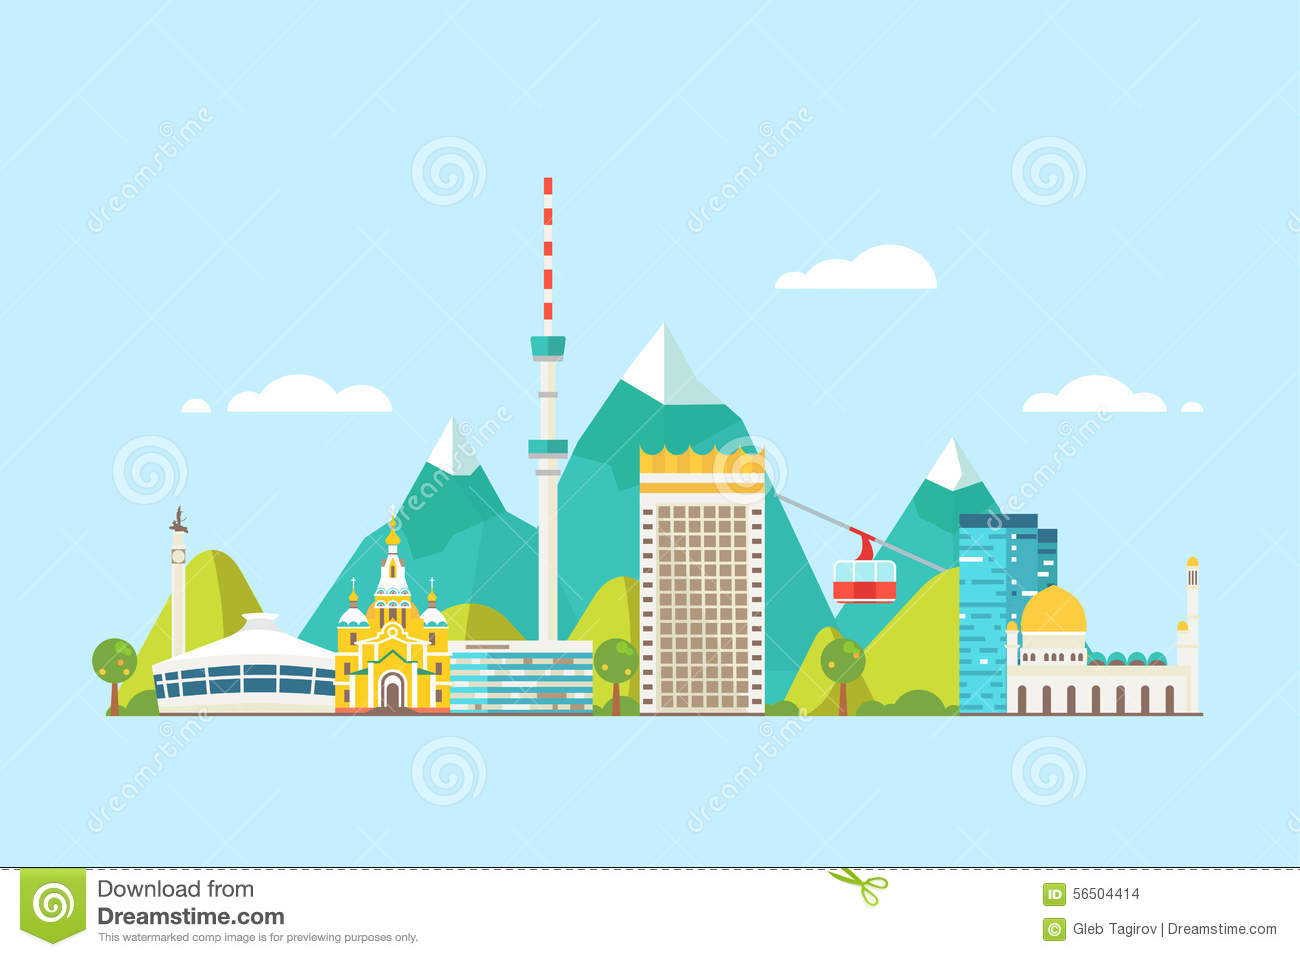 Almaty clipart #18, Download drawings